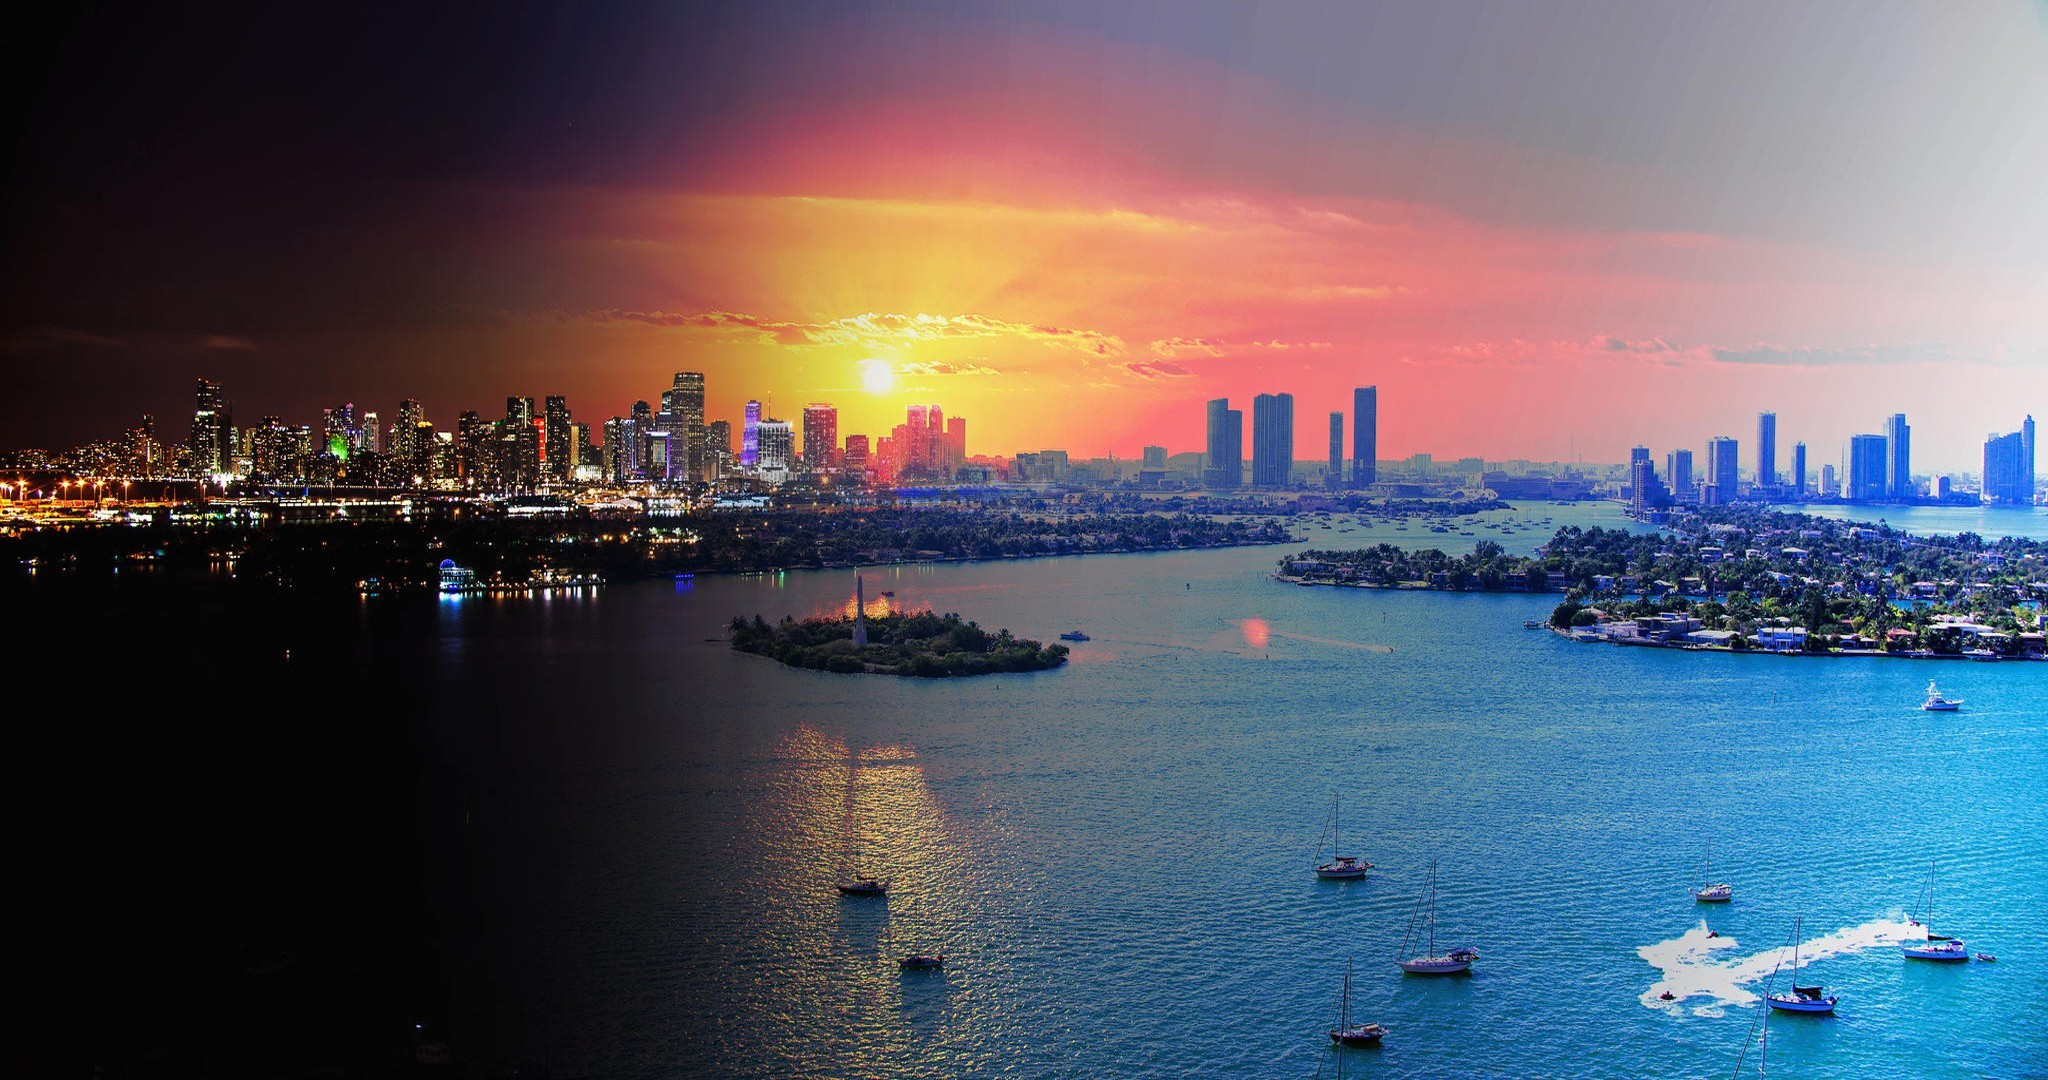 2048x1080 Wallpaper miami fl florida miami evening lights vice city .